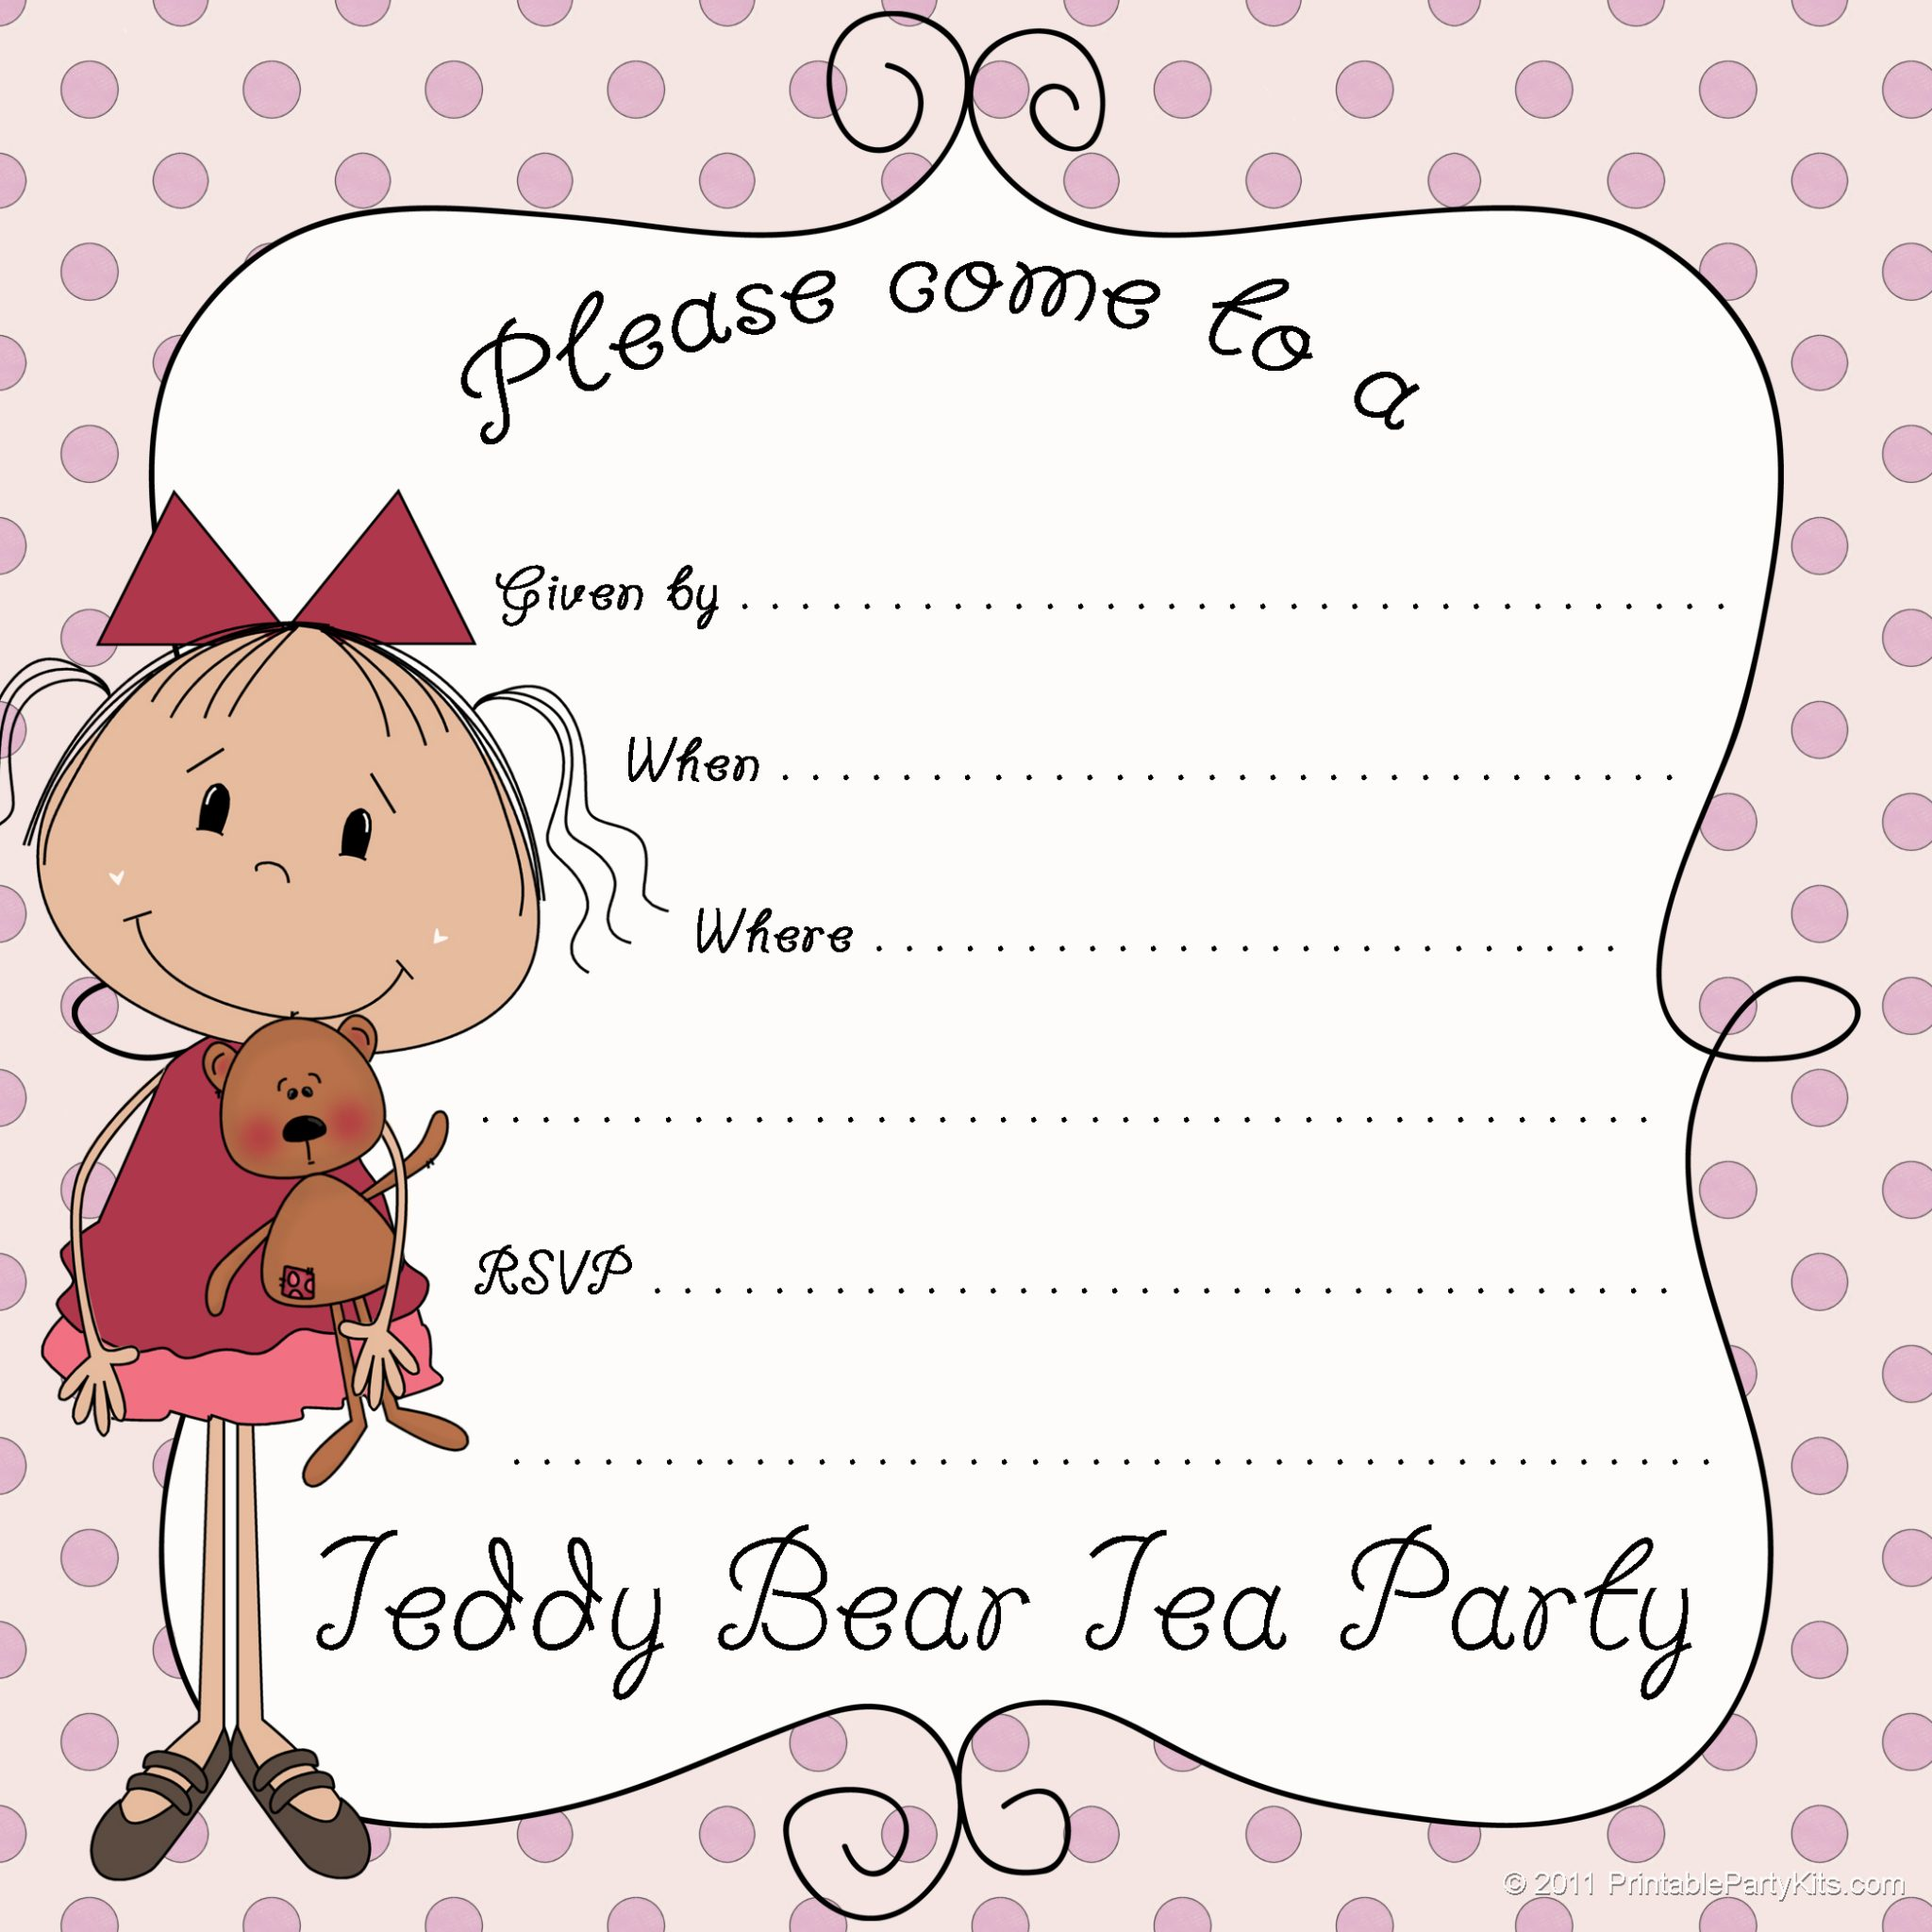 Free Printable Teddy Bear Tea Party Invitations – Kids Tea Party Invitations